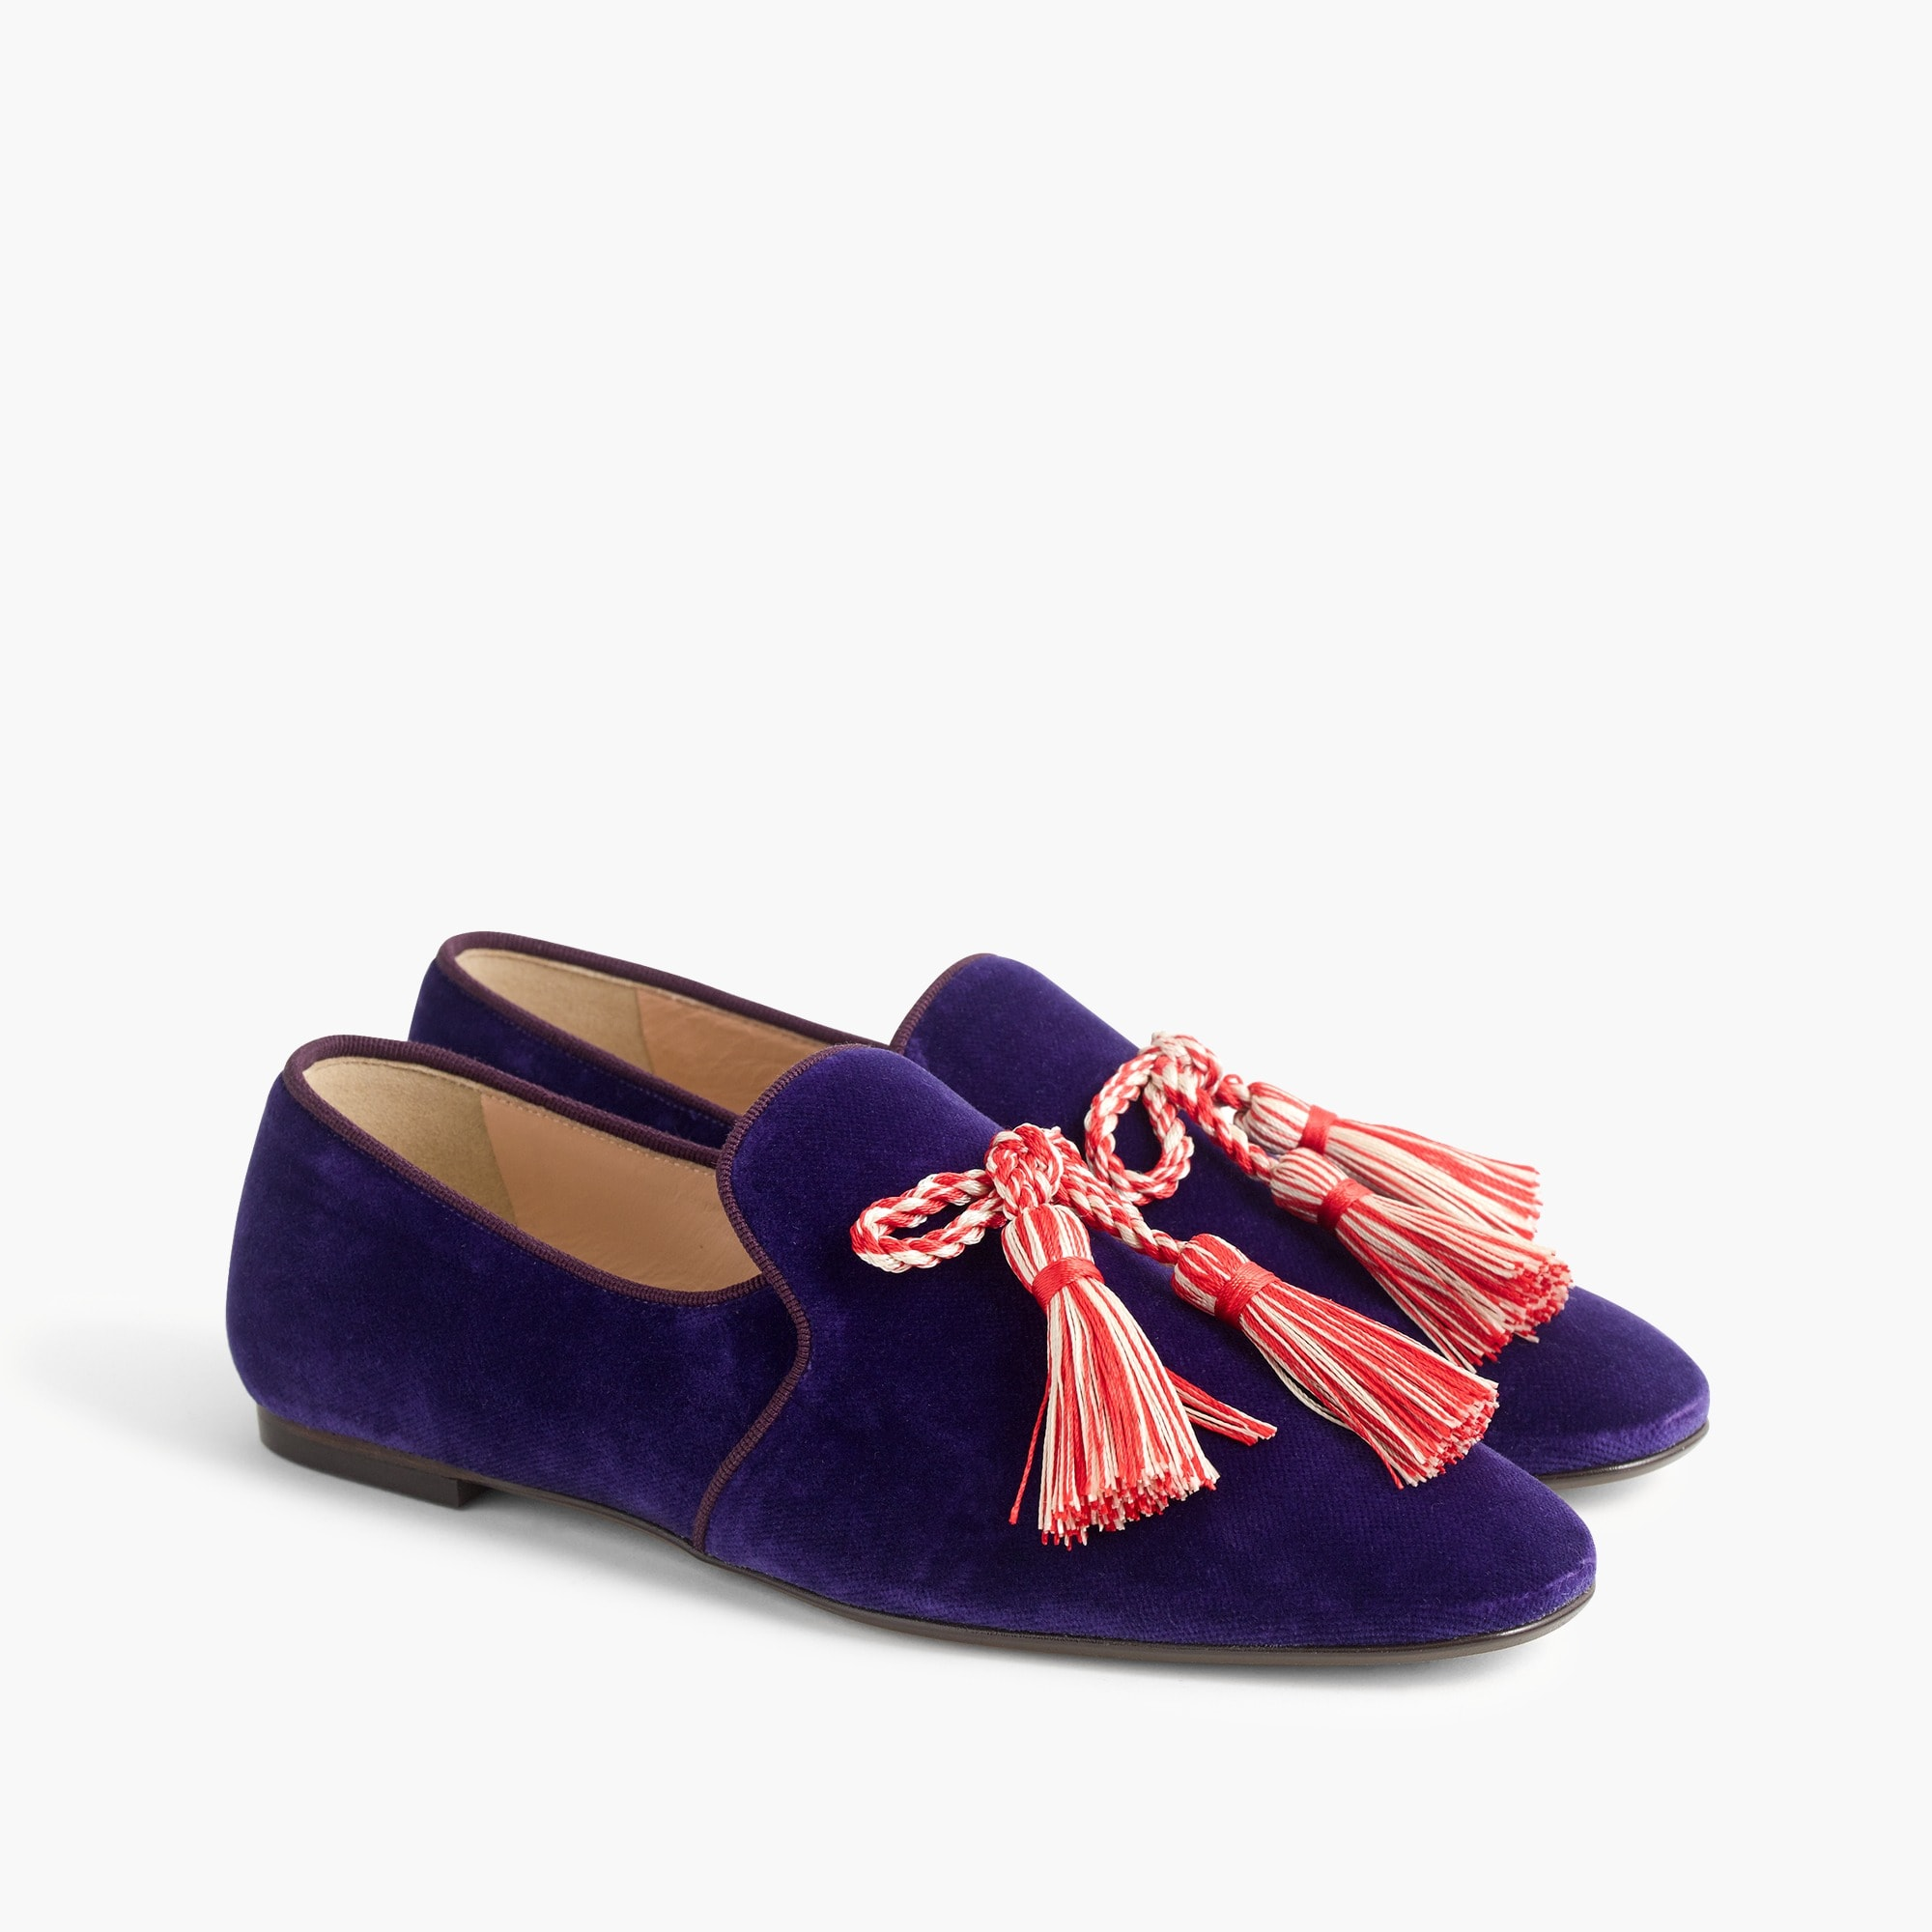 Velvet smoking slippers